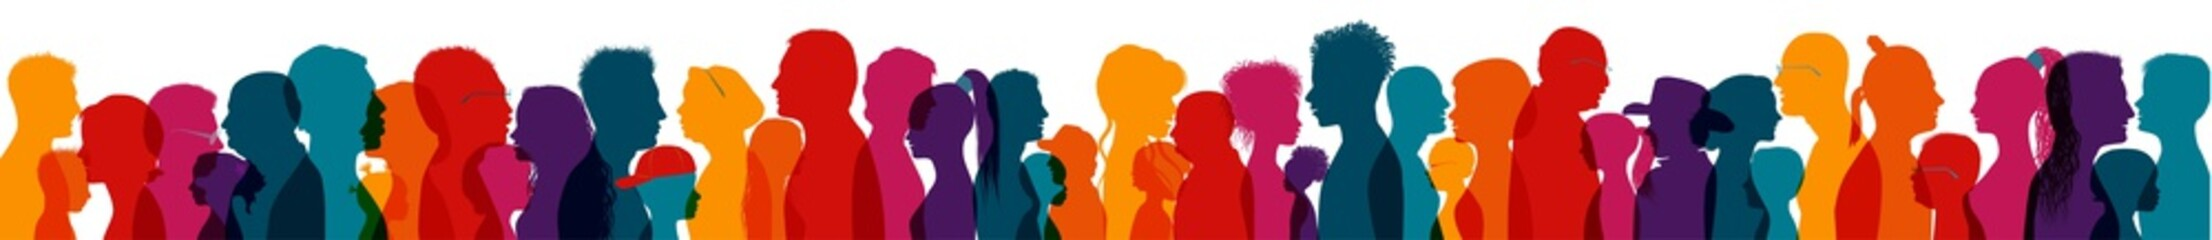 Population and society with diverse people.Communication crowd of families and multiethnic people and of diverse culture.Sociology.Crowding and density of people.Silhouette profile